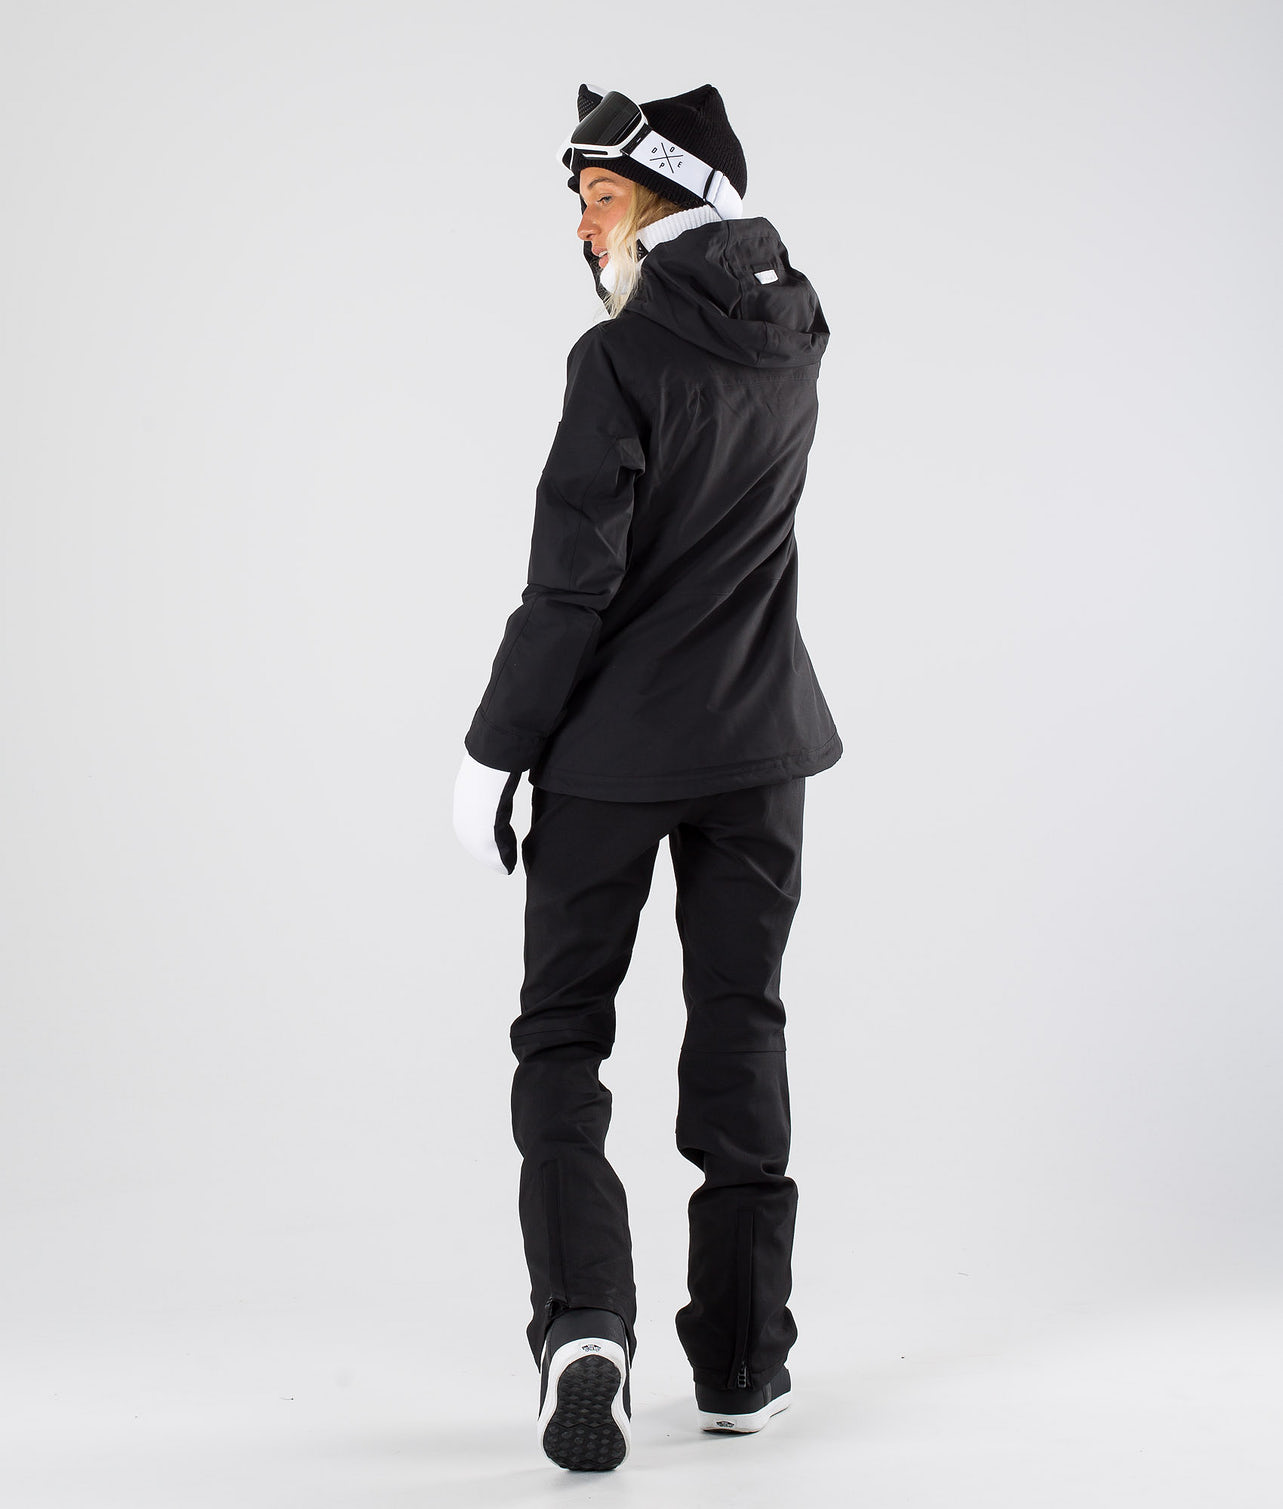 Buy Divine Snowboard Jacket from Dope at Ridestore.com - Always free shipping, free returns and 30 days money back guarantee